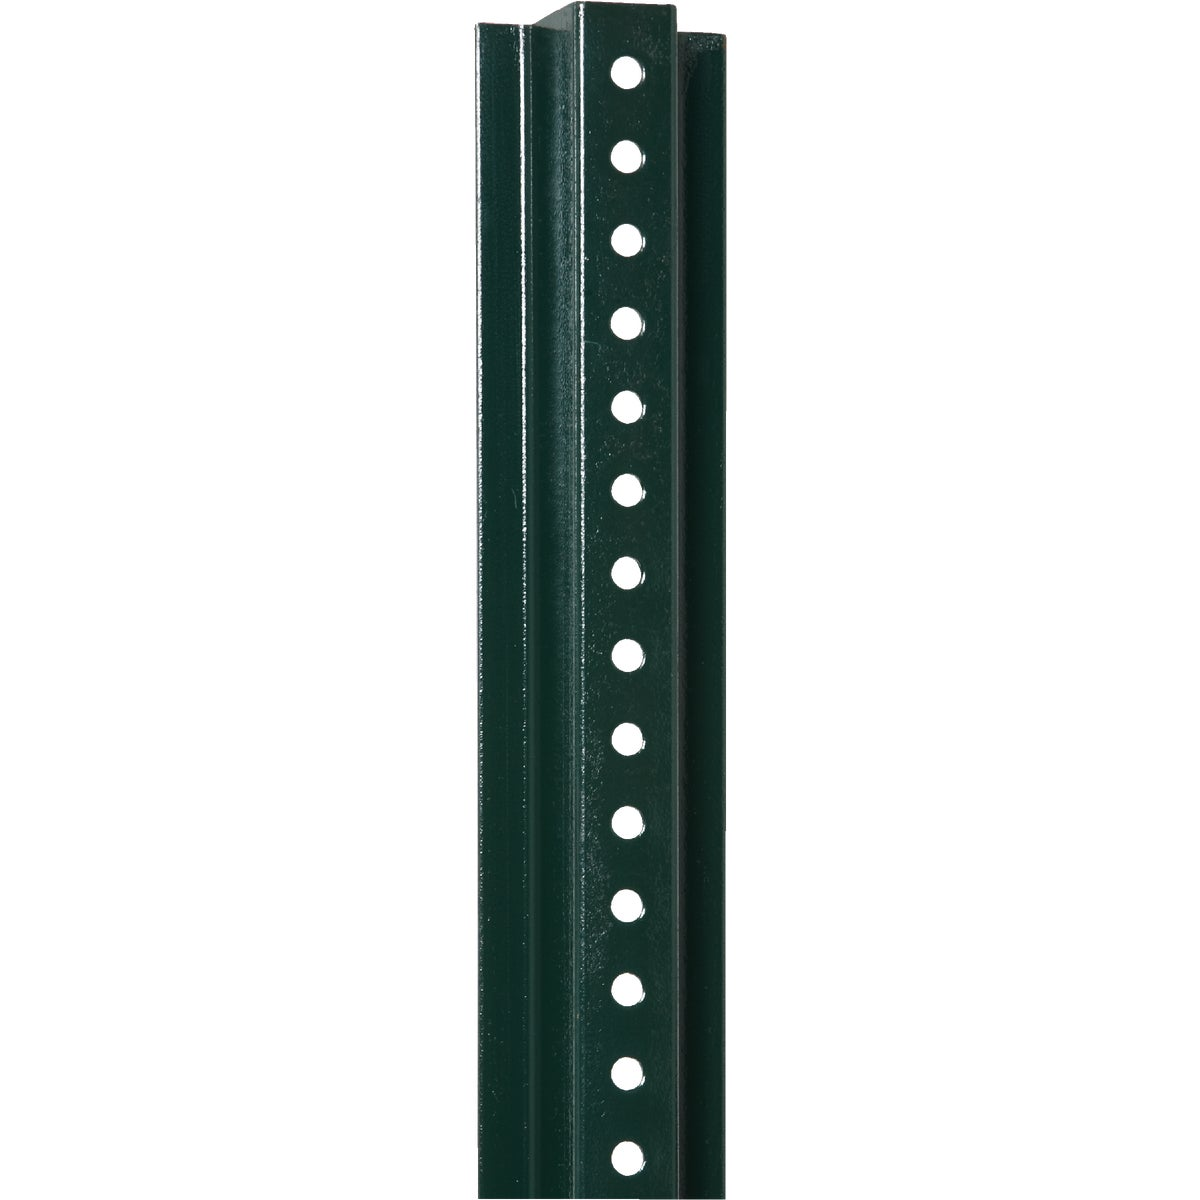 8' GRN SIGN POST